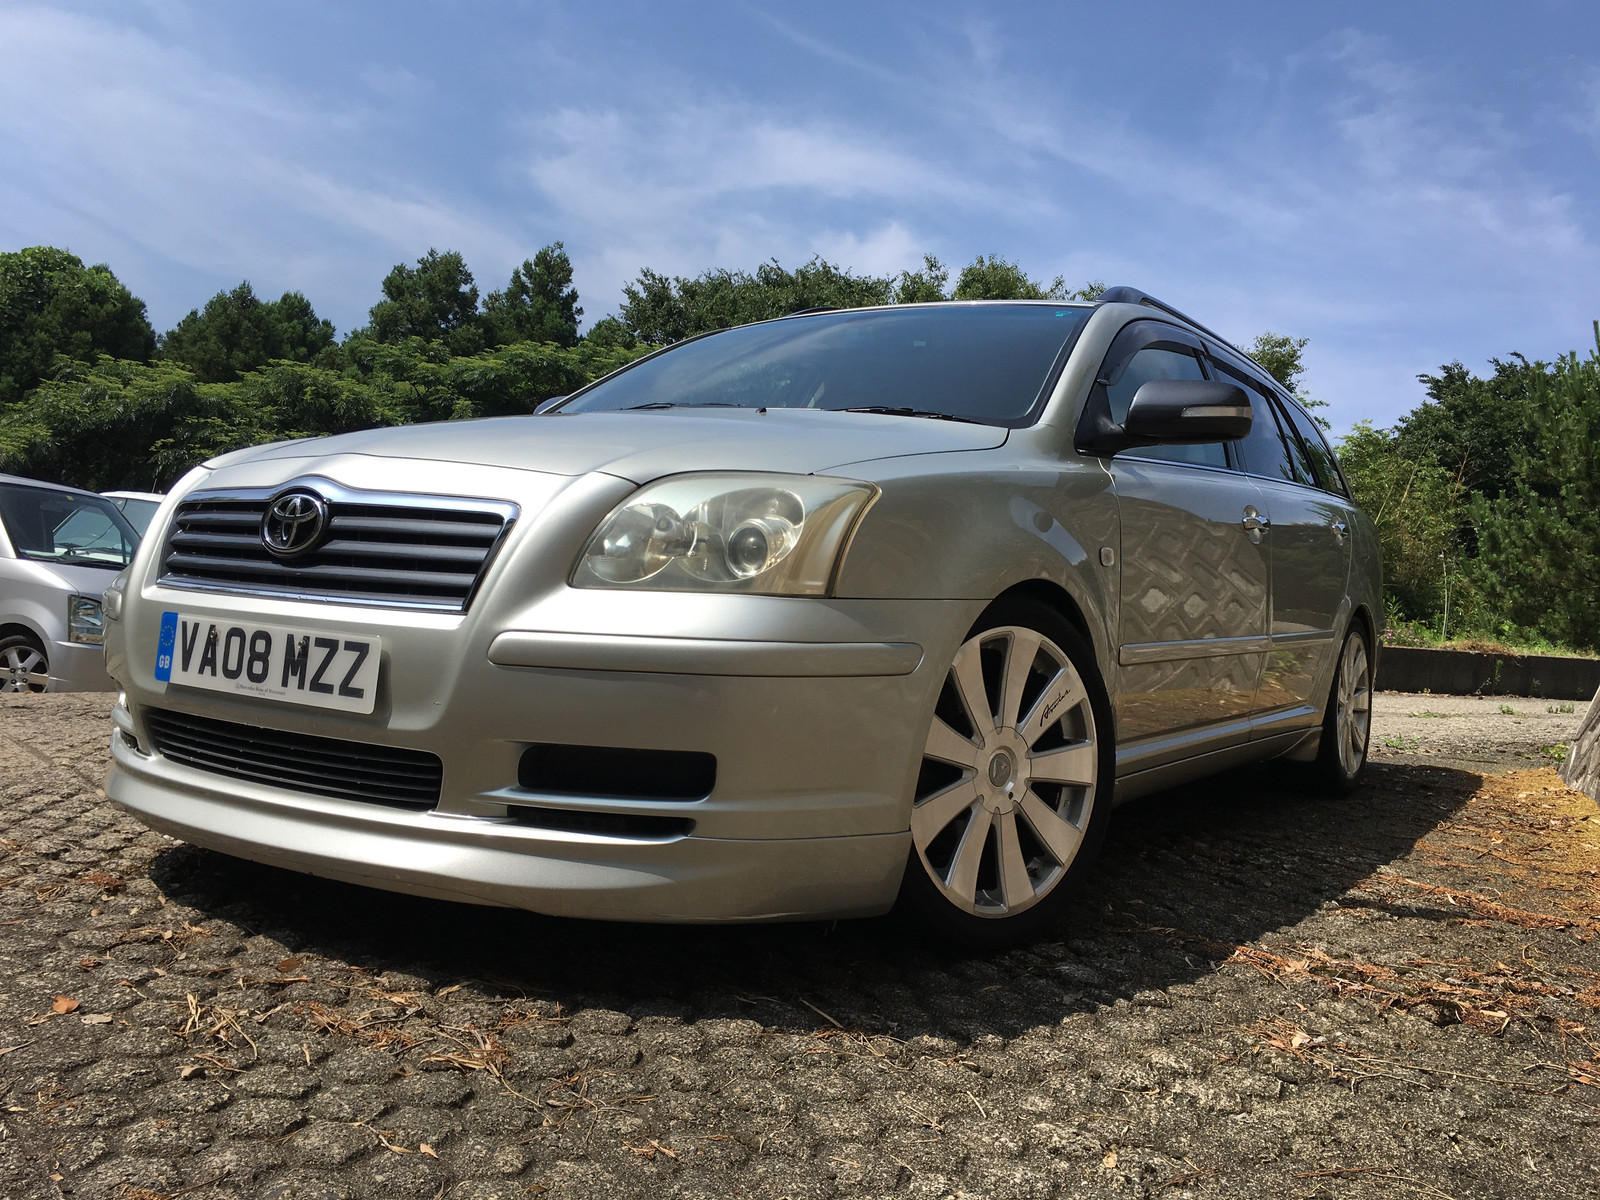 Stock Car 2004 Toyota Avensis Wagon Ecu Tuning ページ